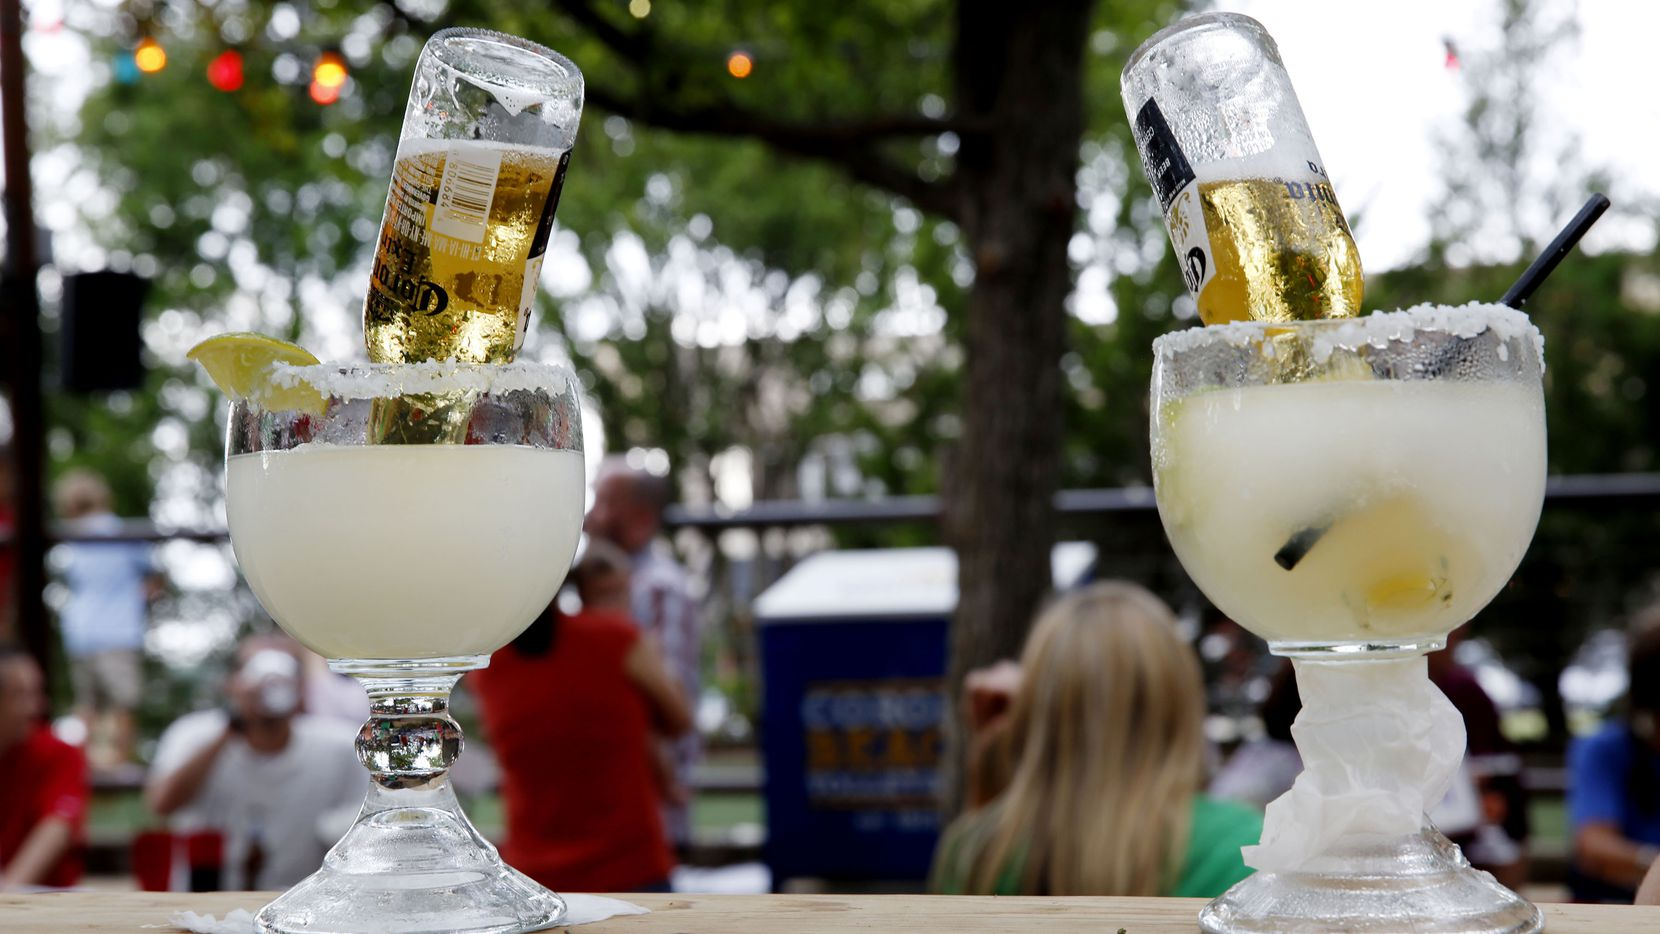 Celebrate National Tequila Day on Friday with a margarita and a beer, or whatever drink floats your boat.